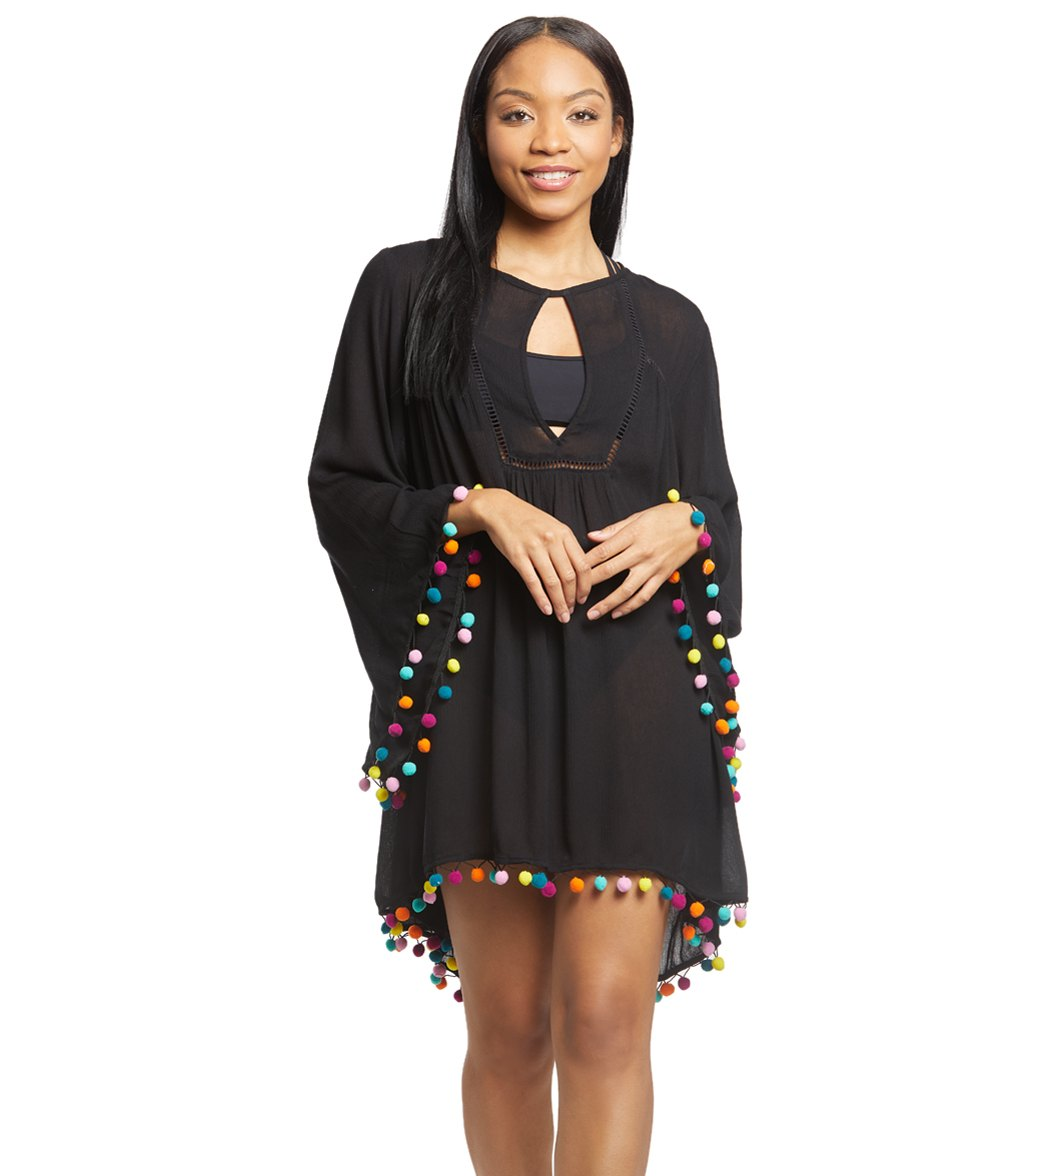 2295c8d60b Nanette Lepore Jazzy Pom Pom Cover Up Tunic at SwimOutlet.com - Free  Shipping